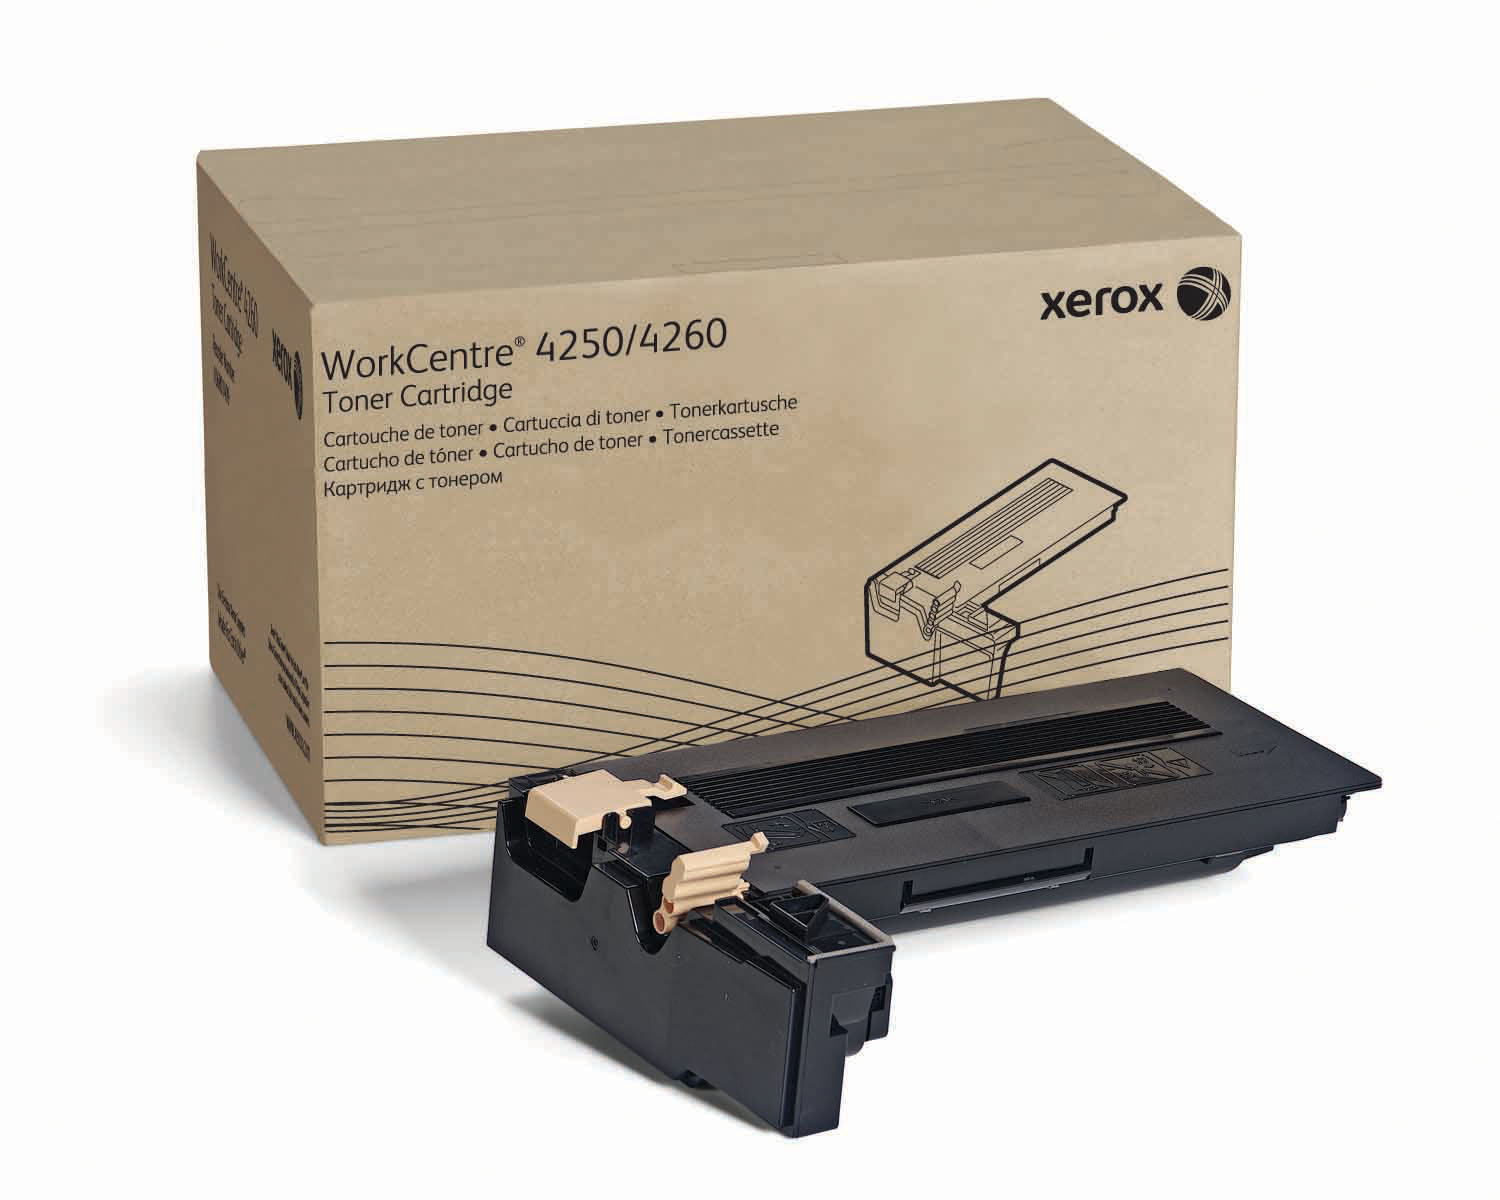 Xerox Workcentre 4250 Toner Cartridge - 25,000 pages